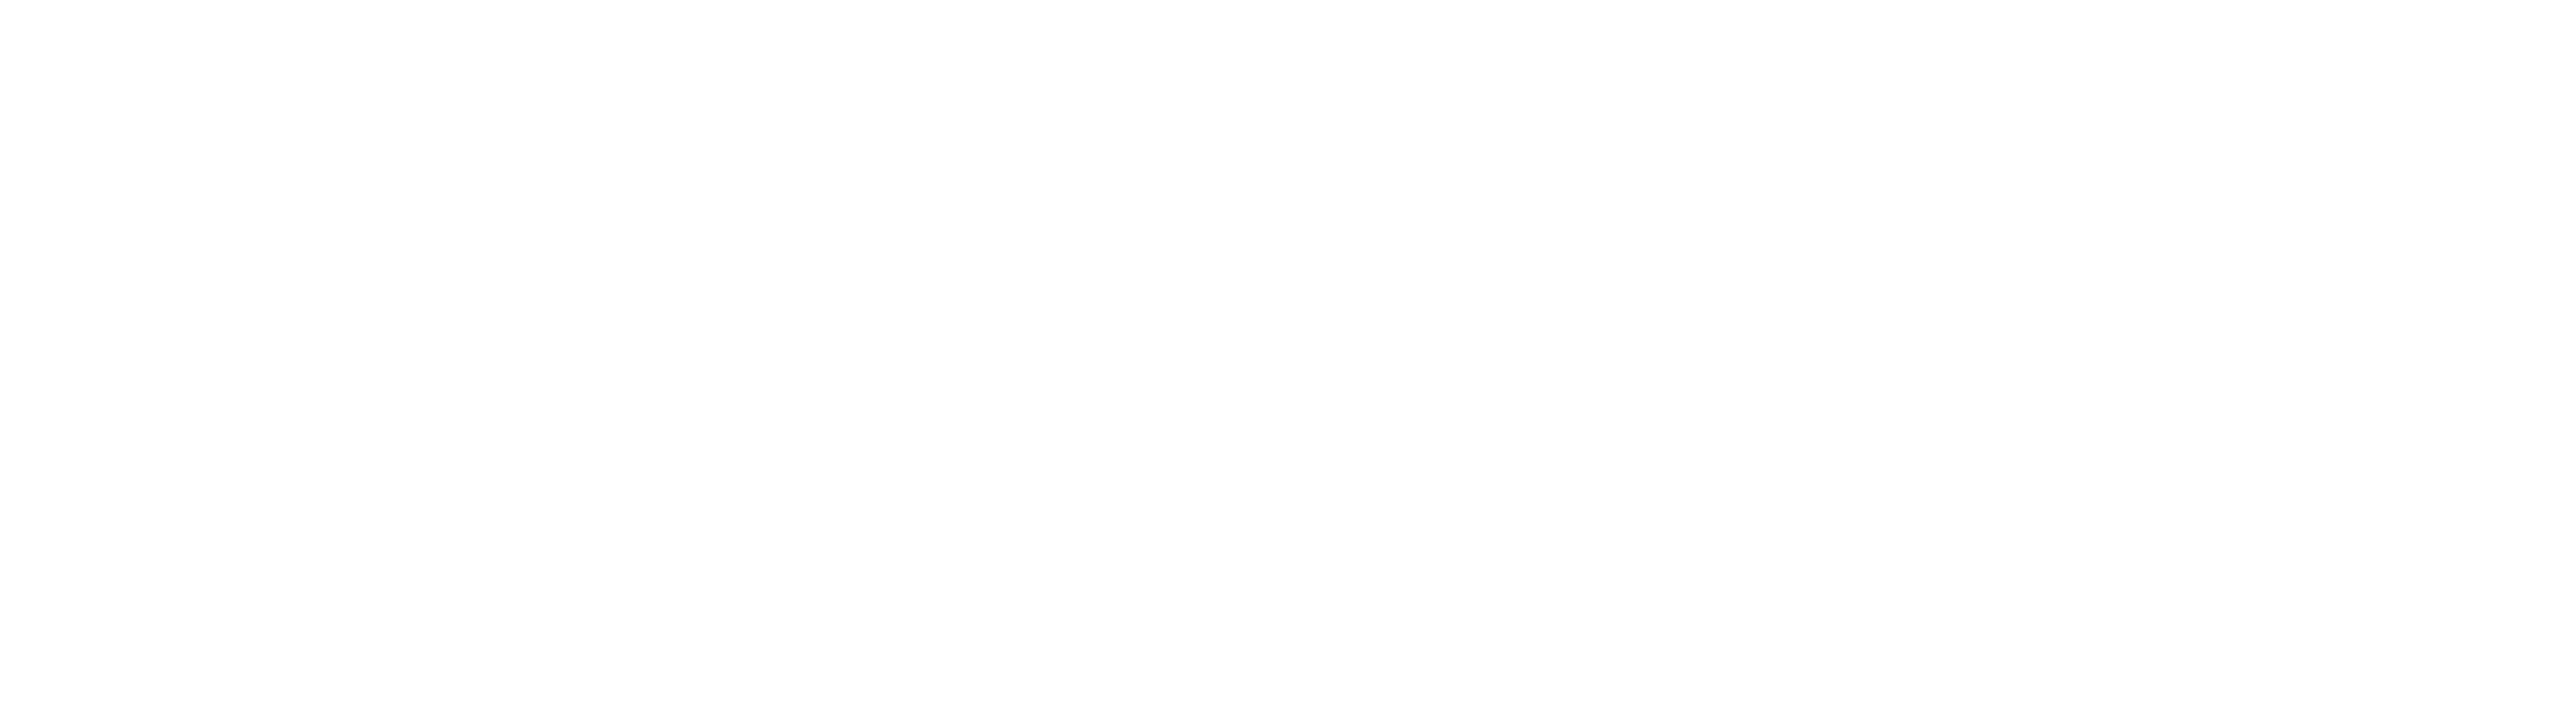 logo damesvolley waregem